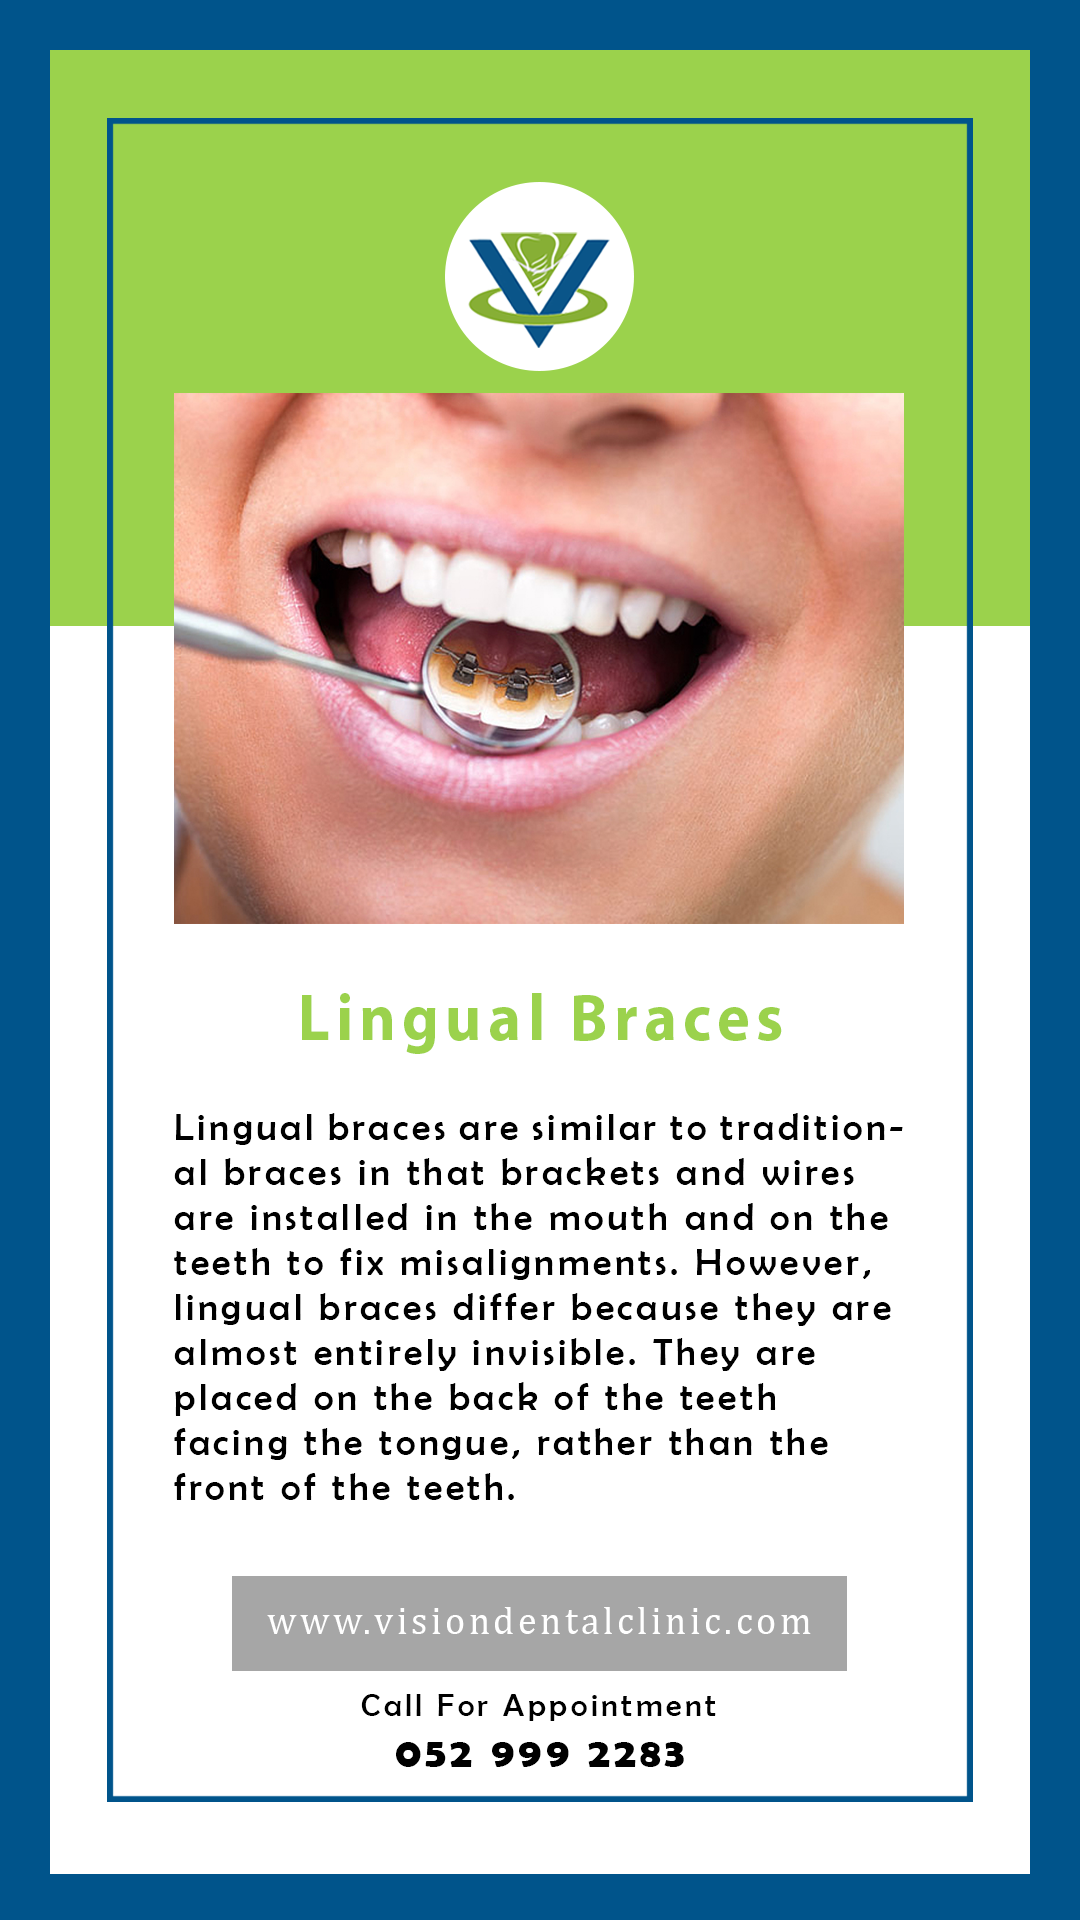 Lingual braces are similar to traditional braces in that brackets and wires are installed in the mouth and on the teeth to fix misalignment. However, lingual braces differ because they are almost entirely invisible. They are placed on the back of the teeth facing the tongue, rather than the front of the teeth.